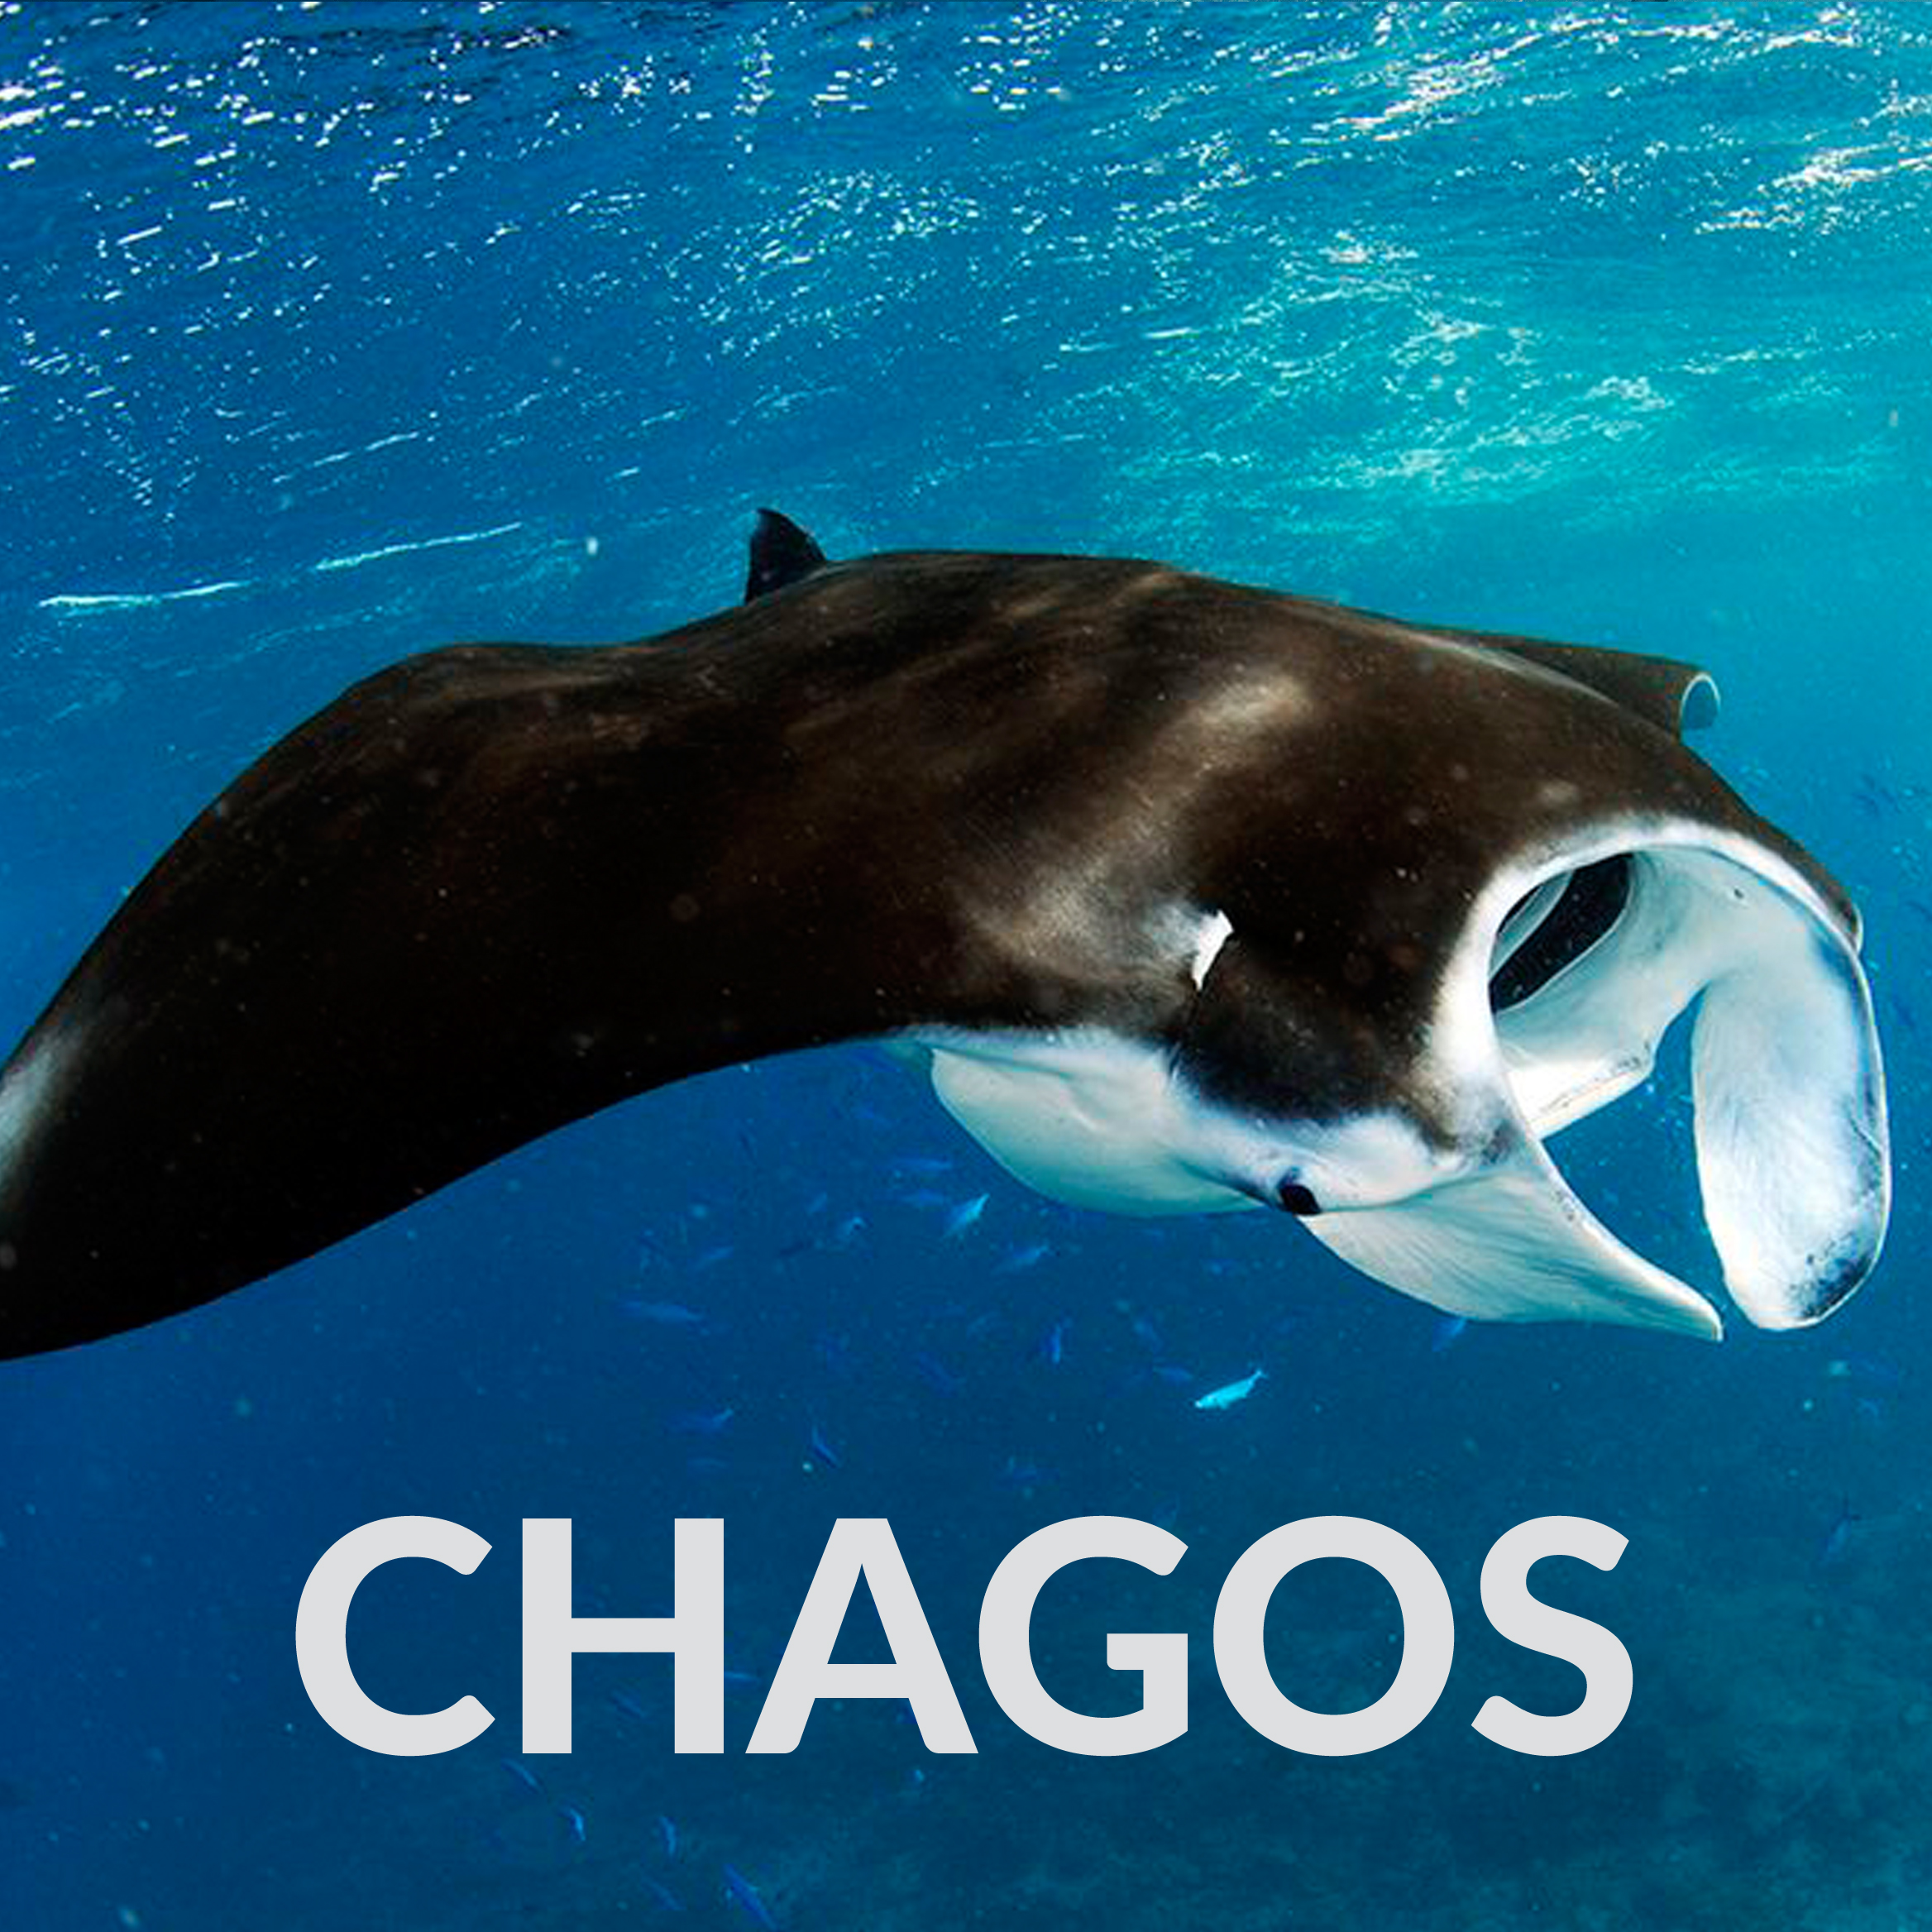 Tile for Chagos Page.jpg